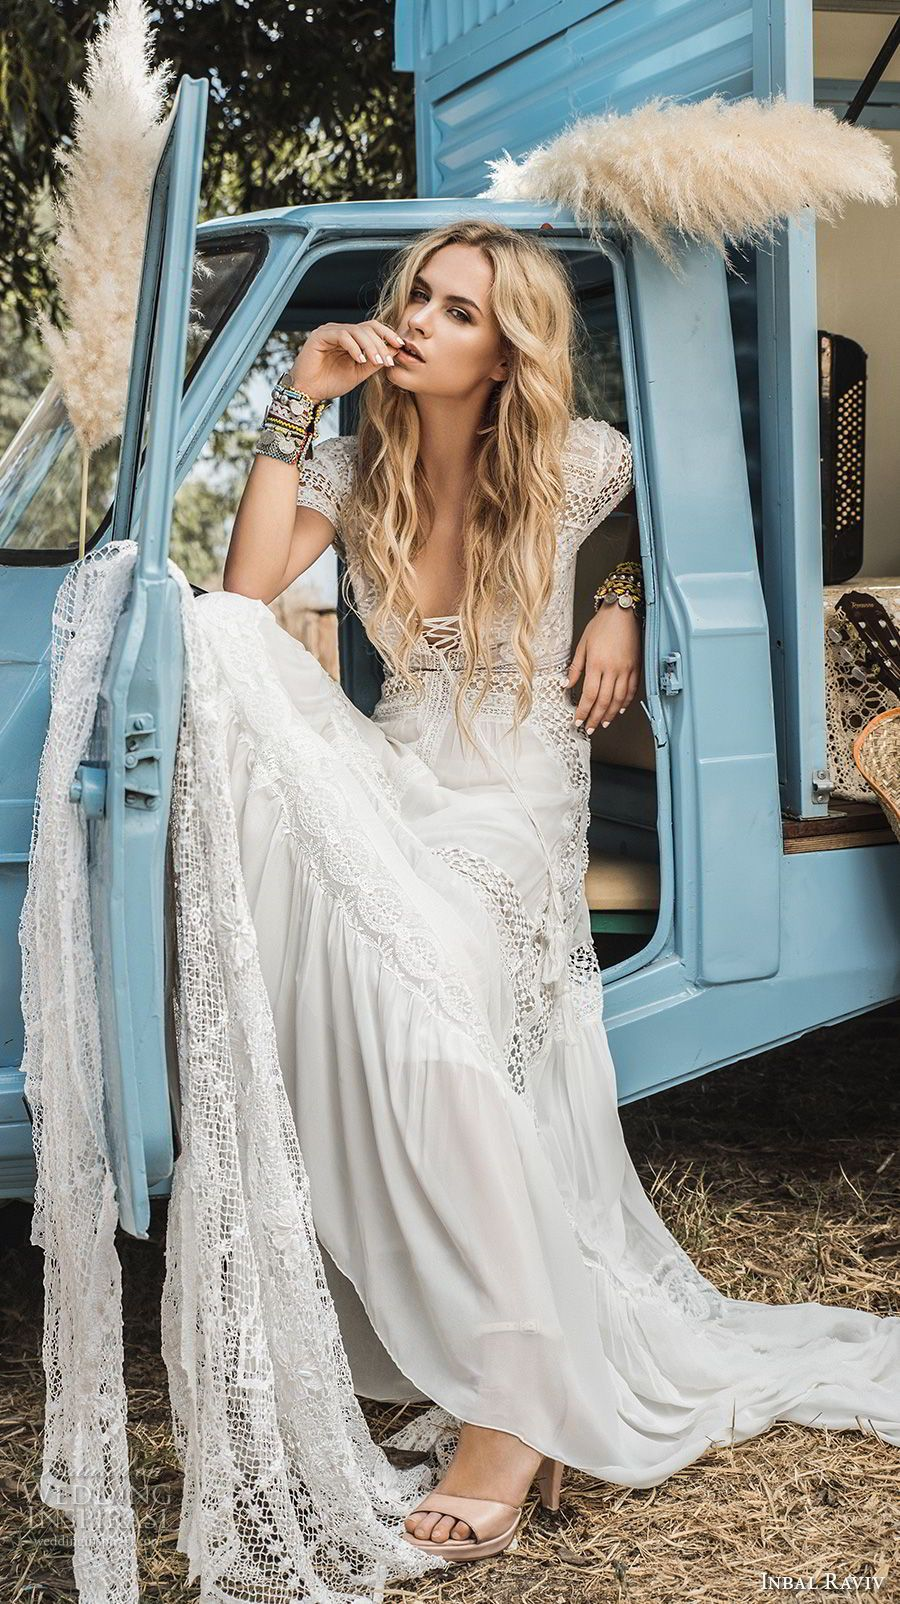 Inbal raviv wedding dresses wedding dress bodice and bohemian